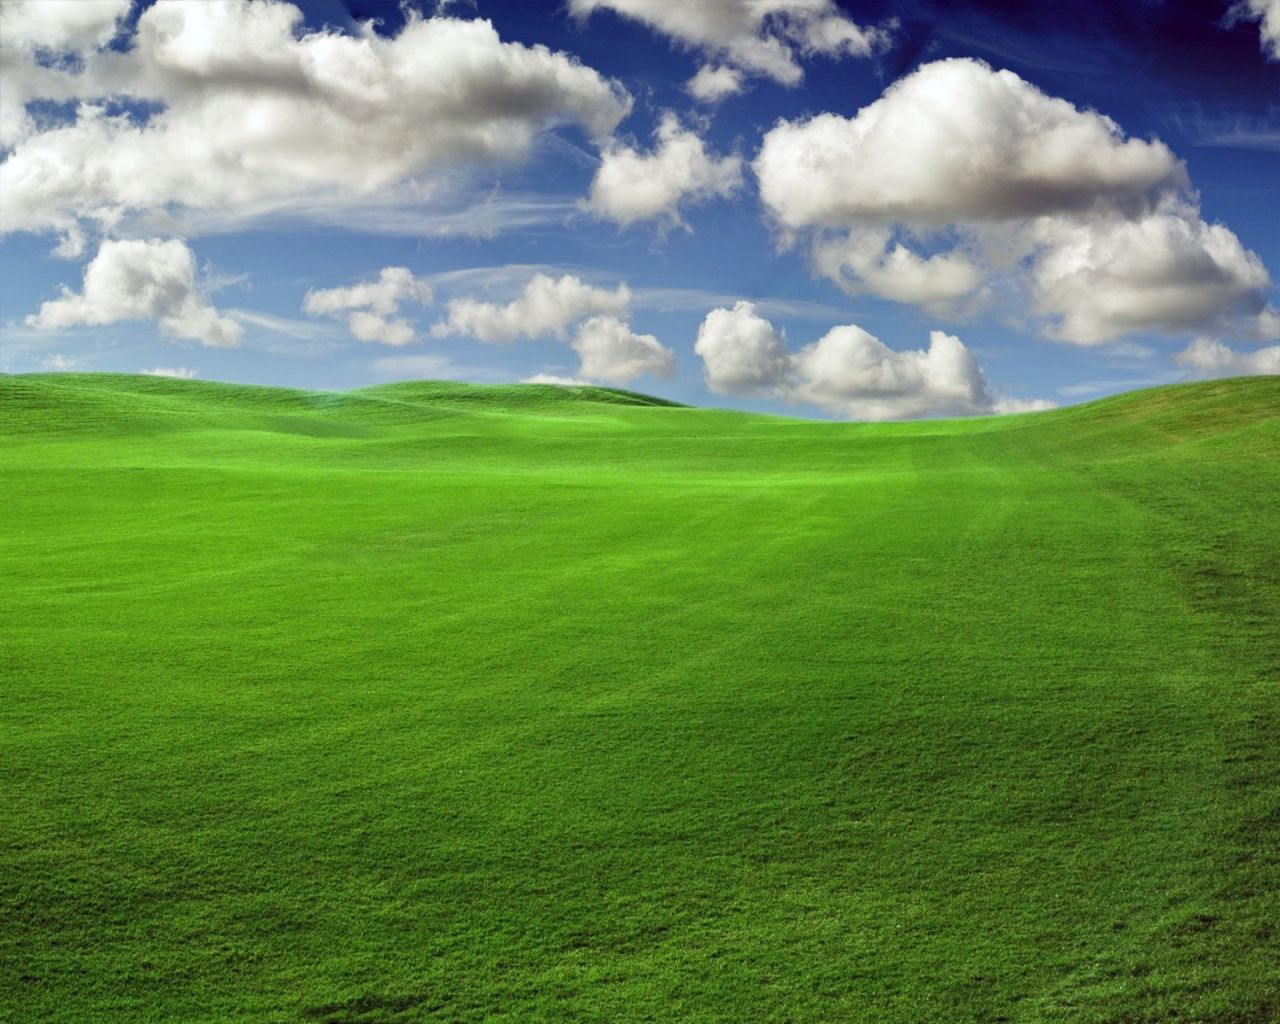 Wallpapers Windows Xp Professional Aurora X Download